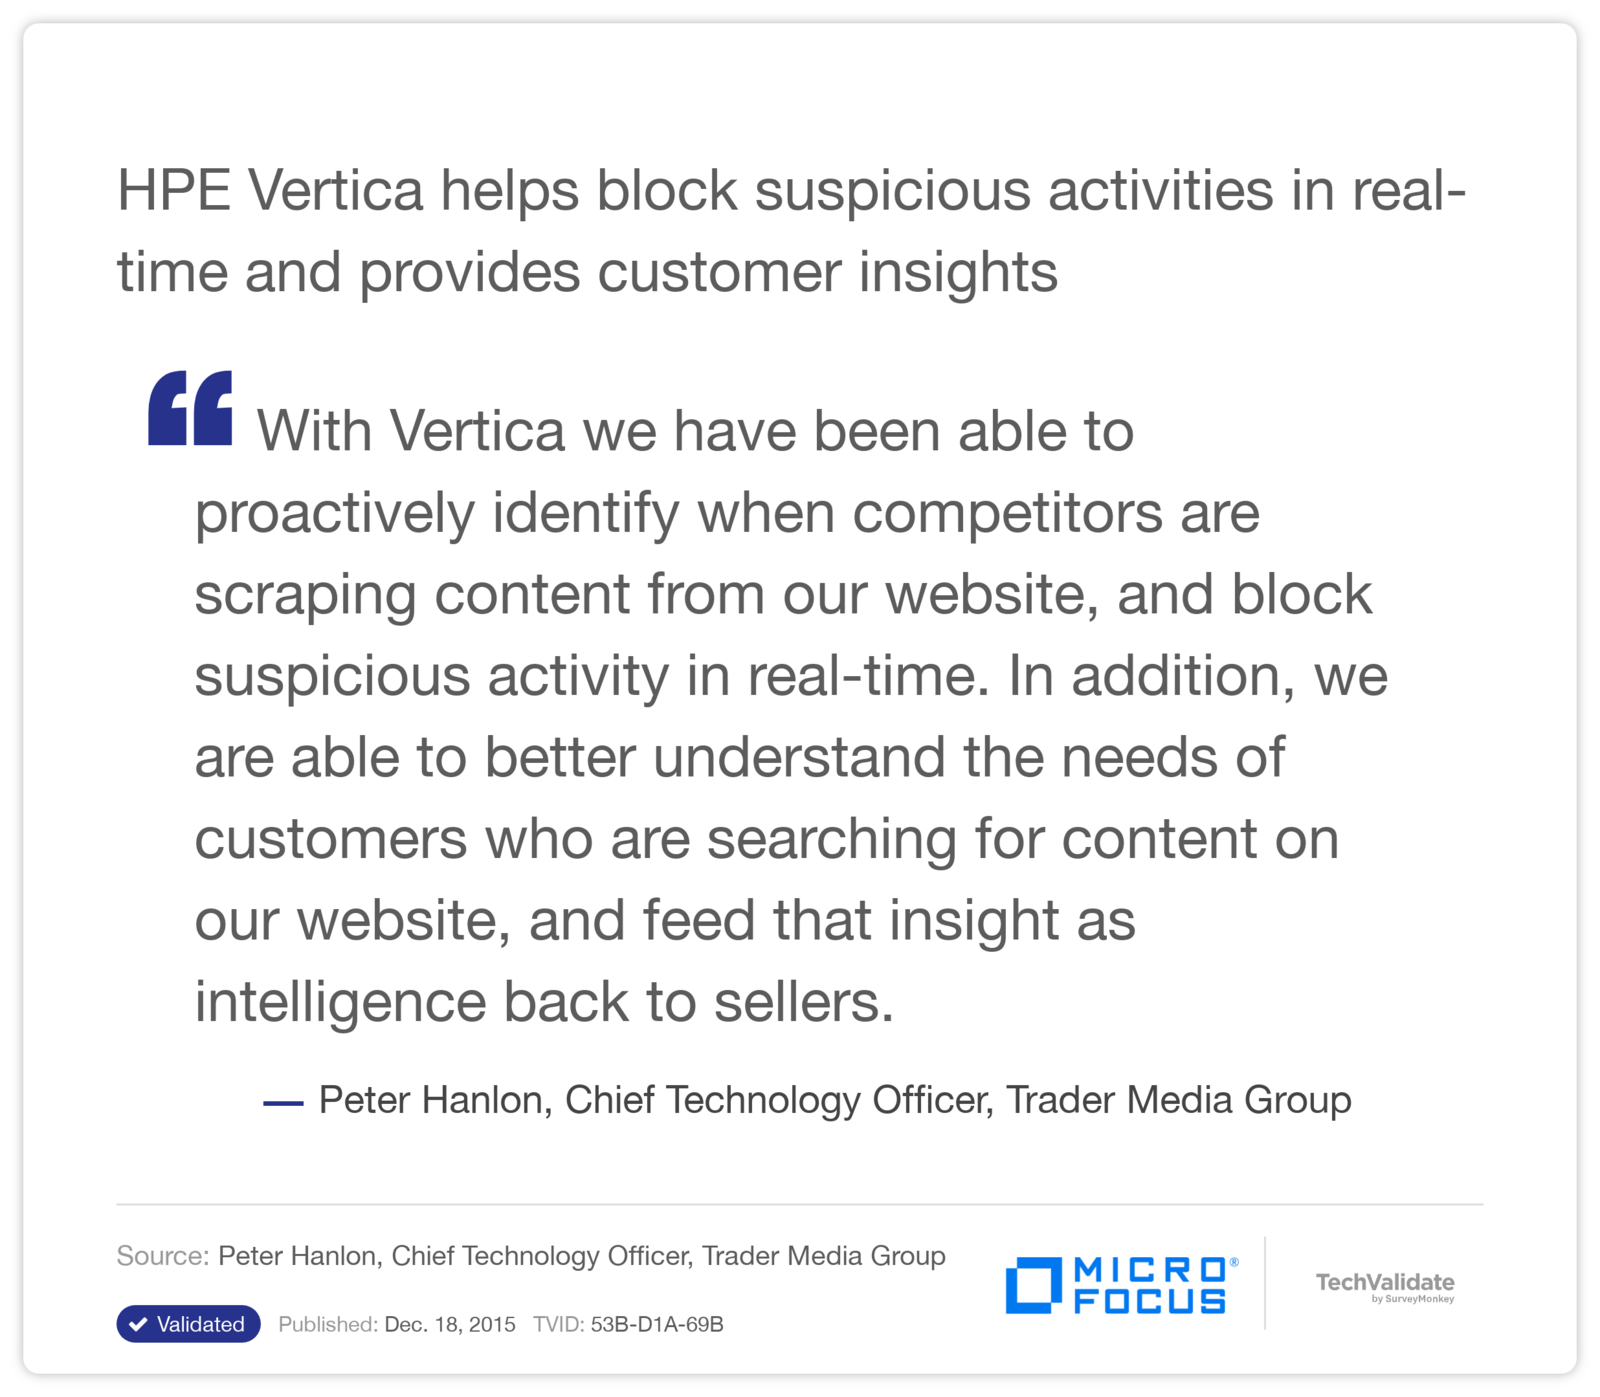 HPE Vertica helps block suspicious activities in real-time and provides customer insights